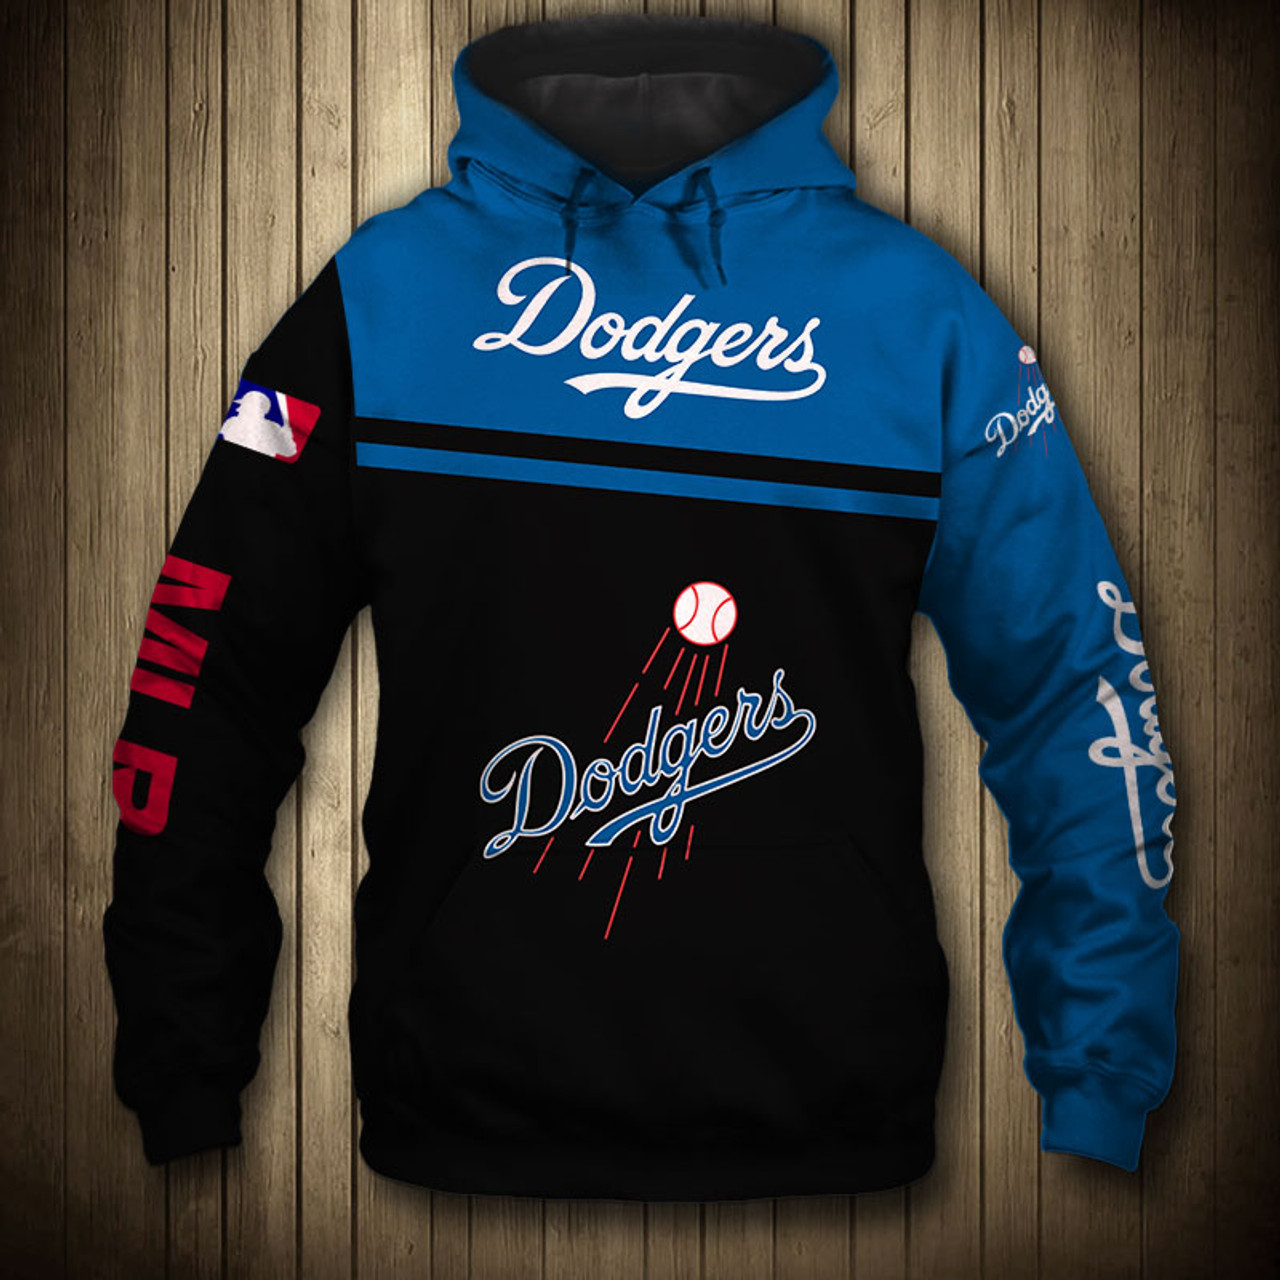 **(OFFICIAL-M.L.B.LOS-ANGELES-DODGERS-TEAM-ZIPPERED-HOODIES/NICE-CUSTOM-DETAILED-3D-GRAPHIC-PRINTED/PREMIUM-ALL-OVER-DOUBLE-SIDED-PRINT/OFFICIAL-DODGERS-TEAM-COLORS & CLASSIC-DODGERS-3D-GRAPHIC-LOGOS/TRENDY-NEW-PREMIUM-M.L.B.DODGERS-ZIPPERED-HOODIES)**